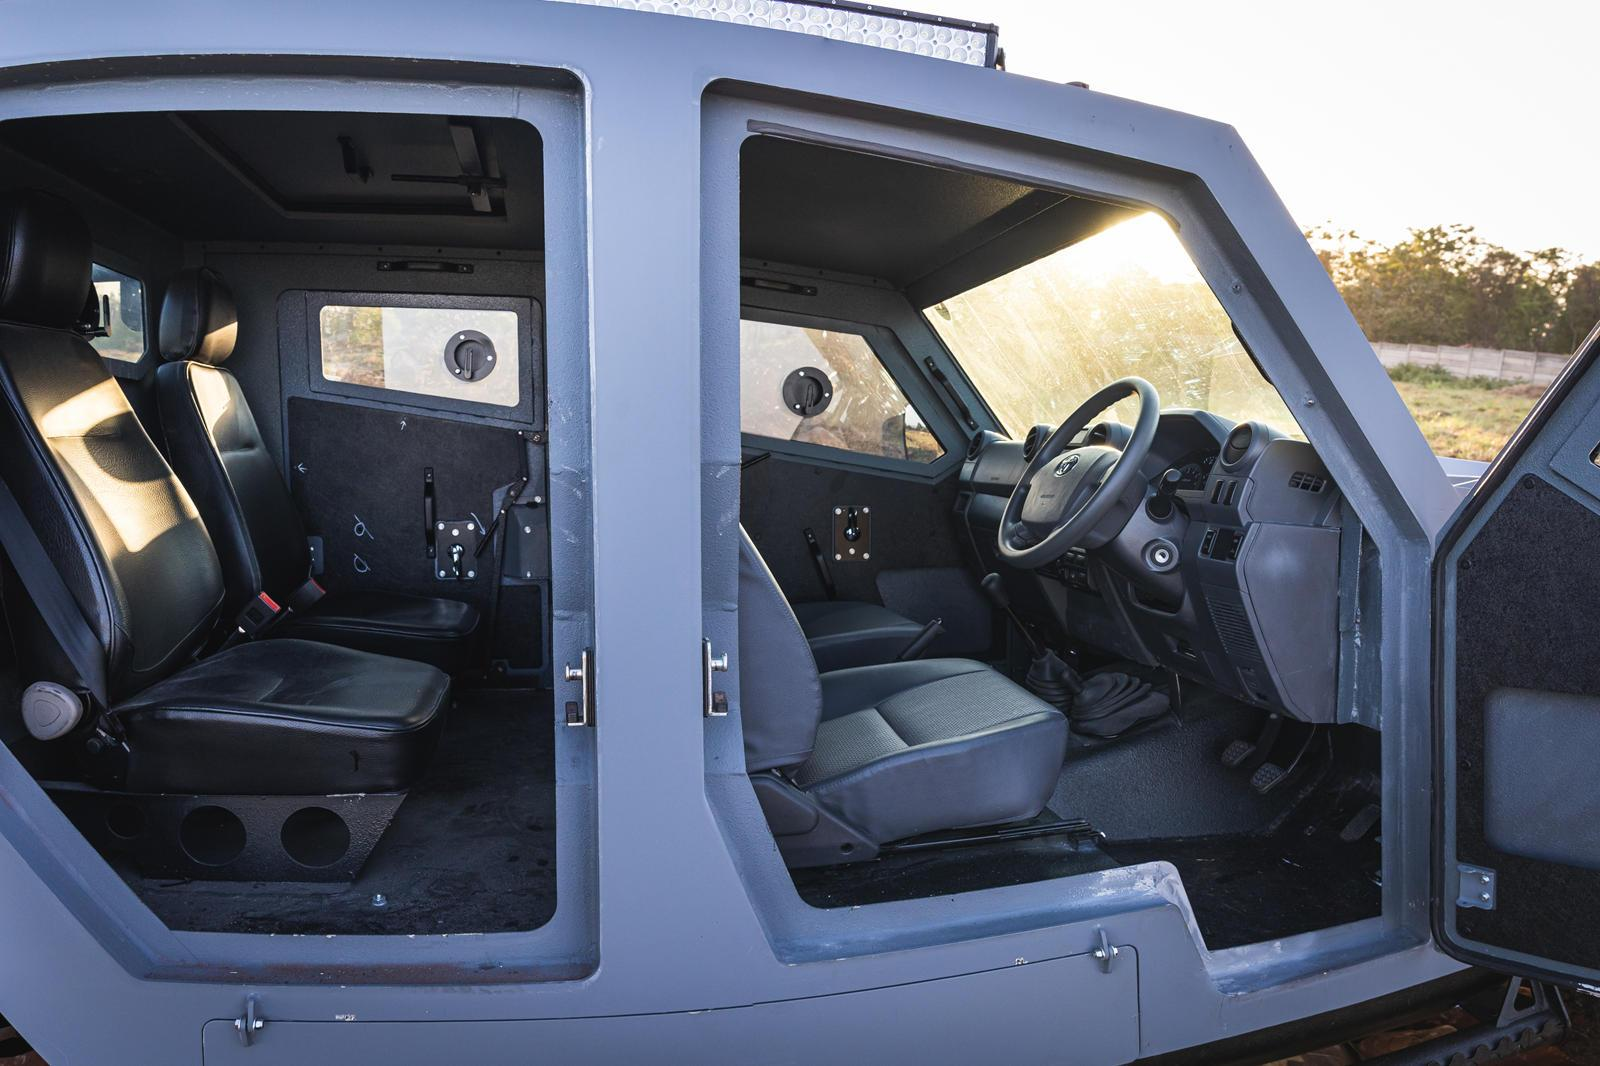 Armored Toyota Land Cruiser Can Drive Over Land Mines